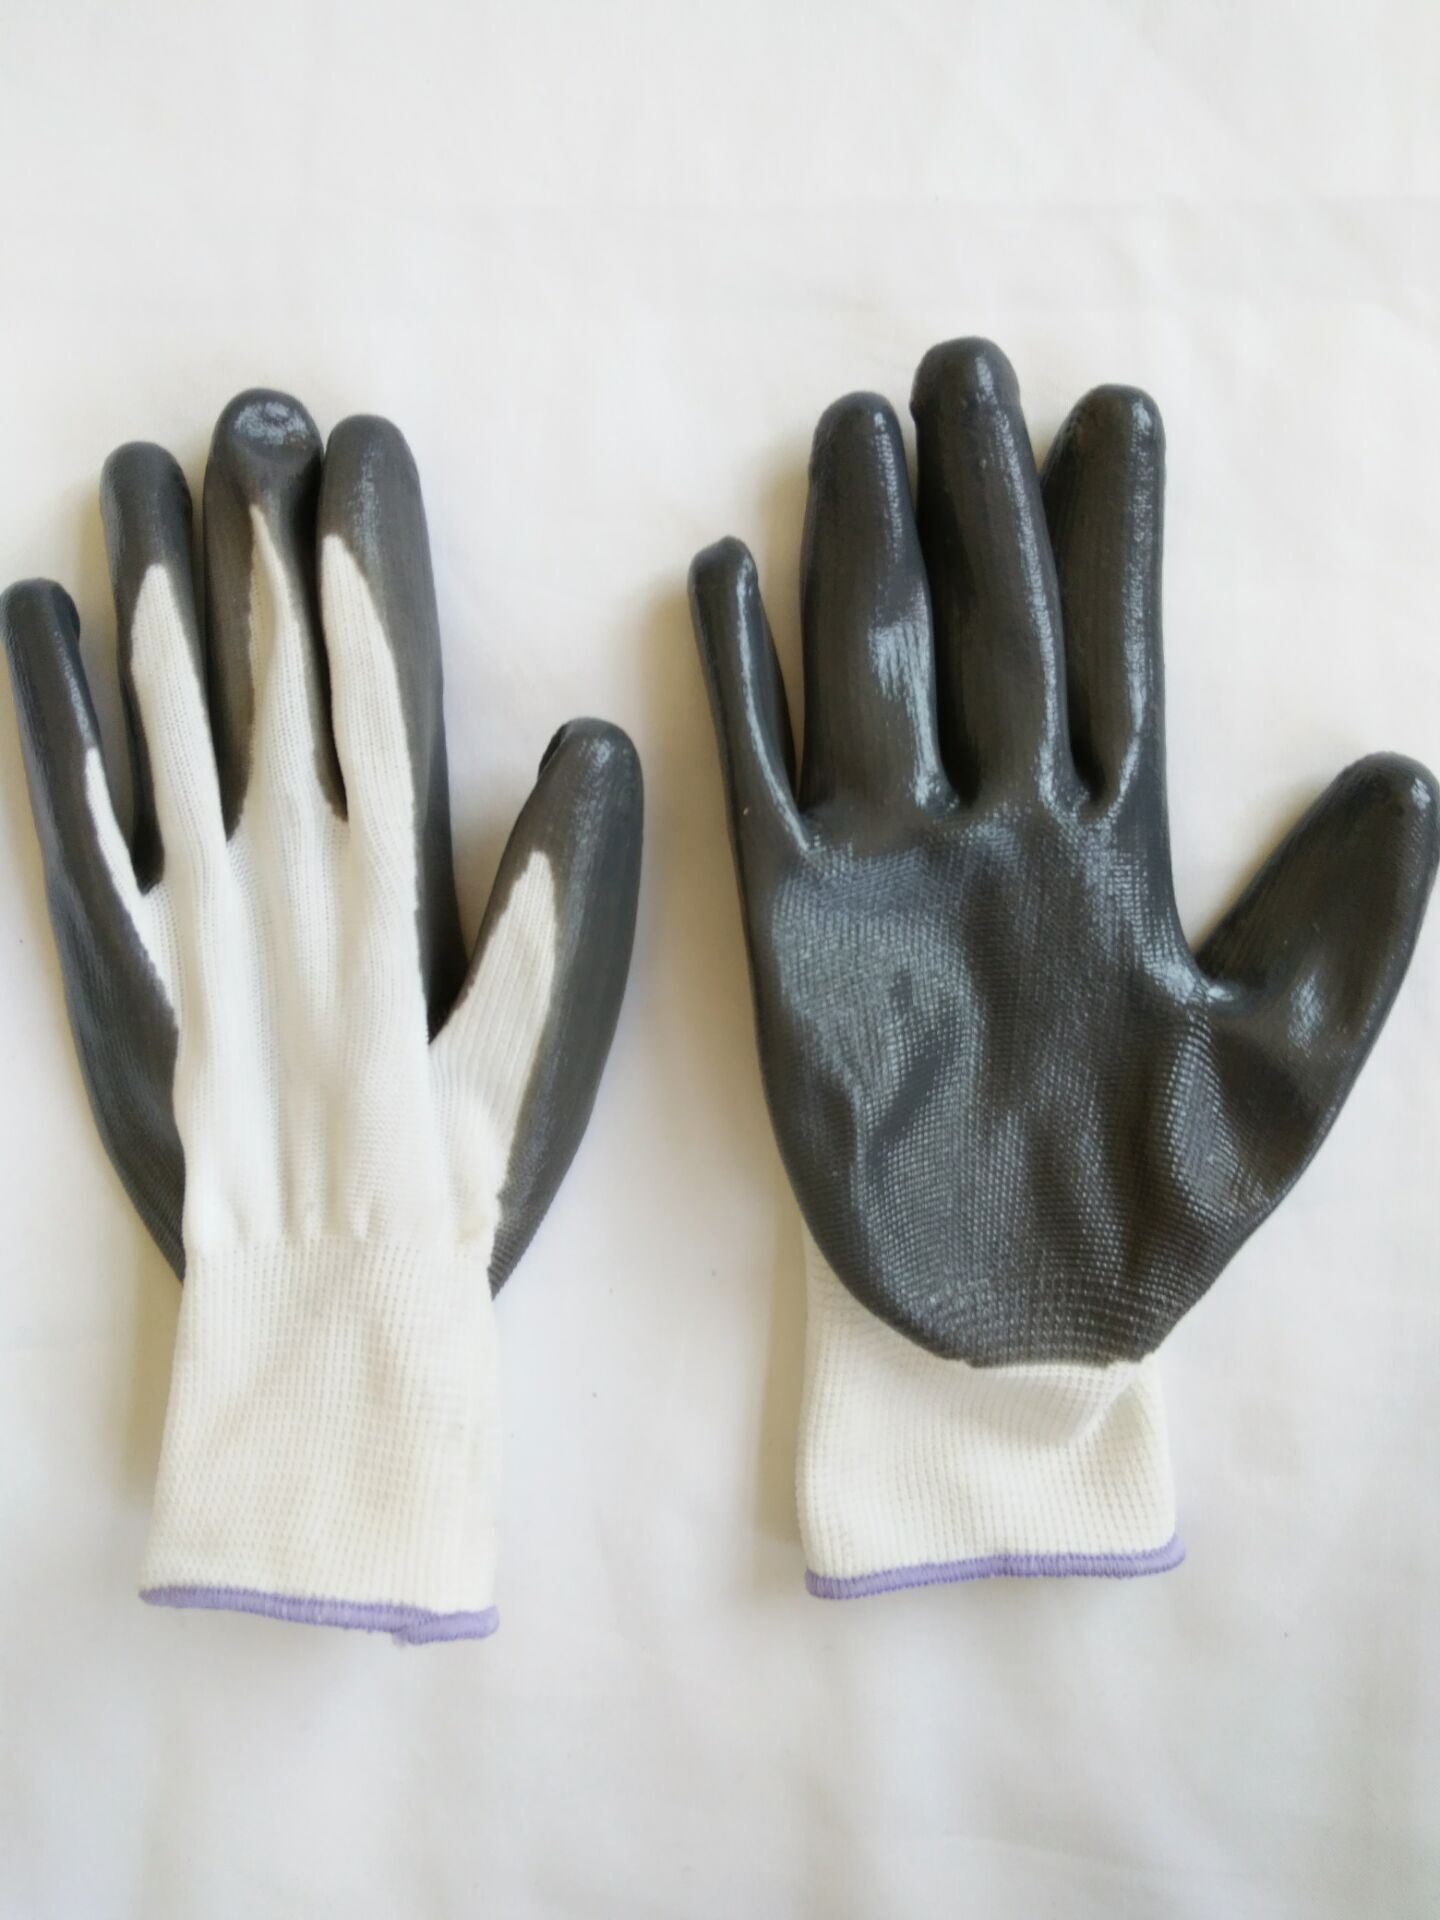 13G Polyester Shell Nitrile Coated Safety Work Gloves (N6007)